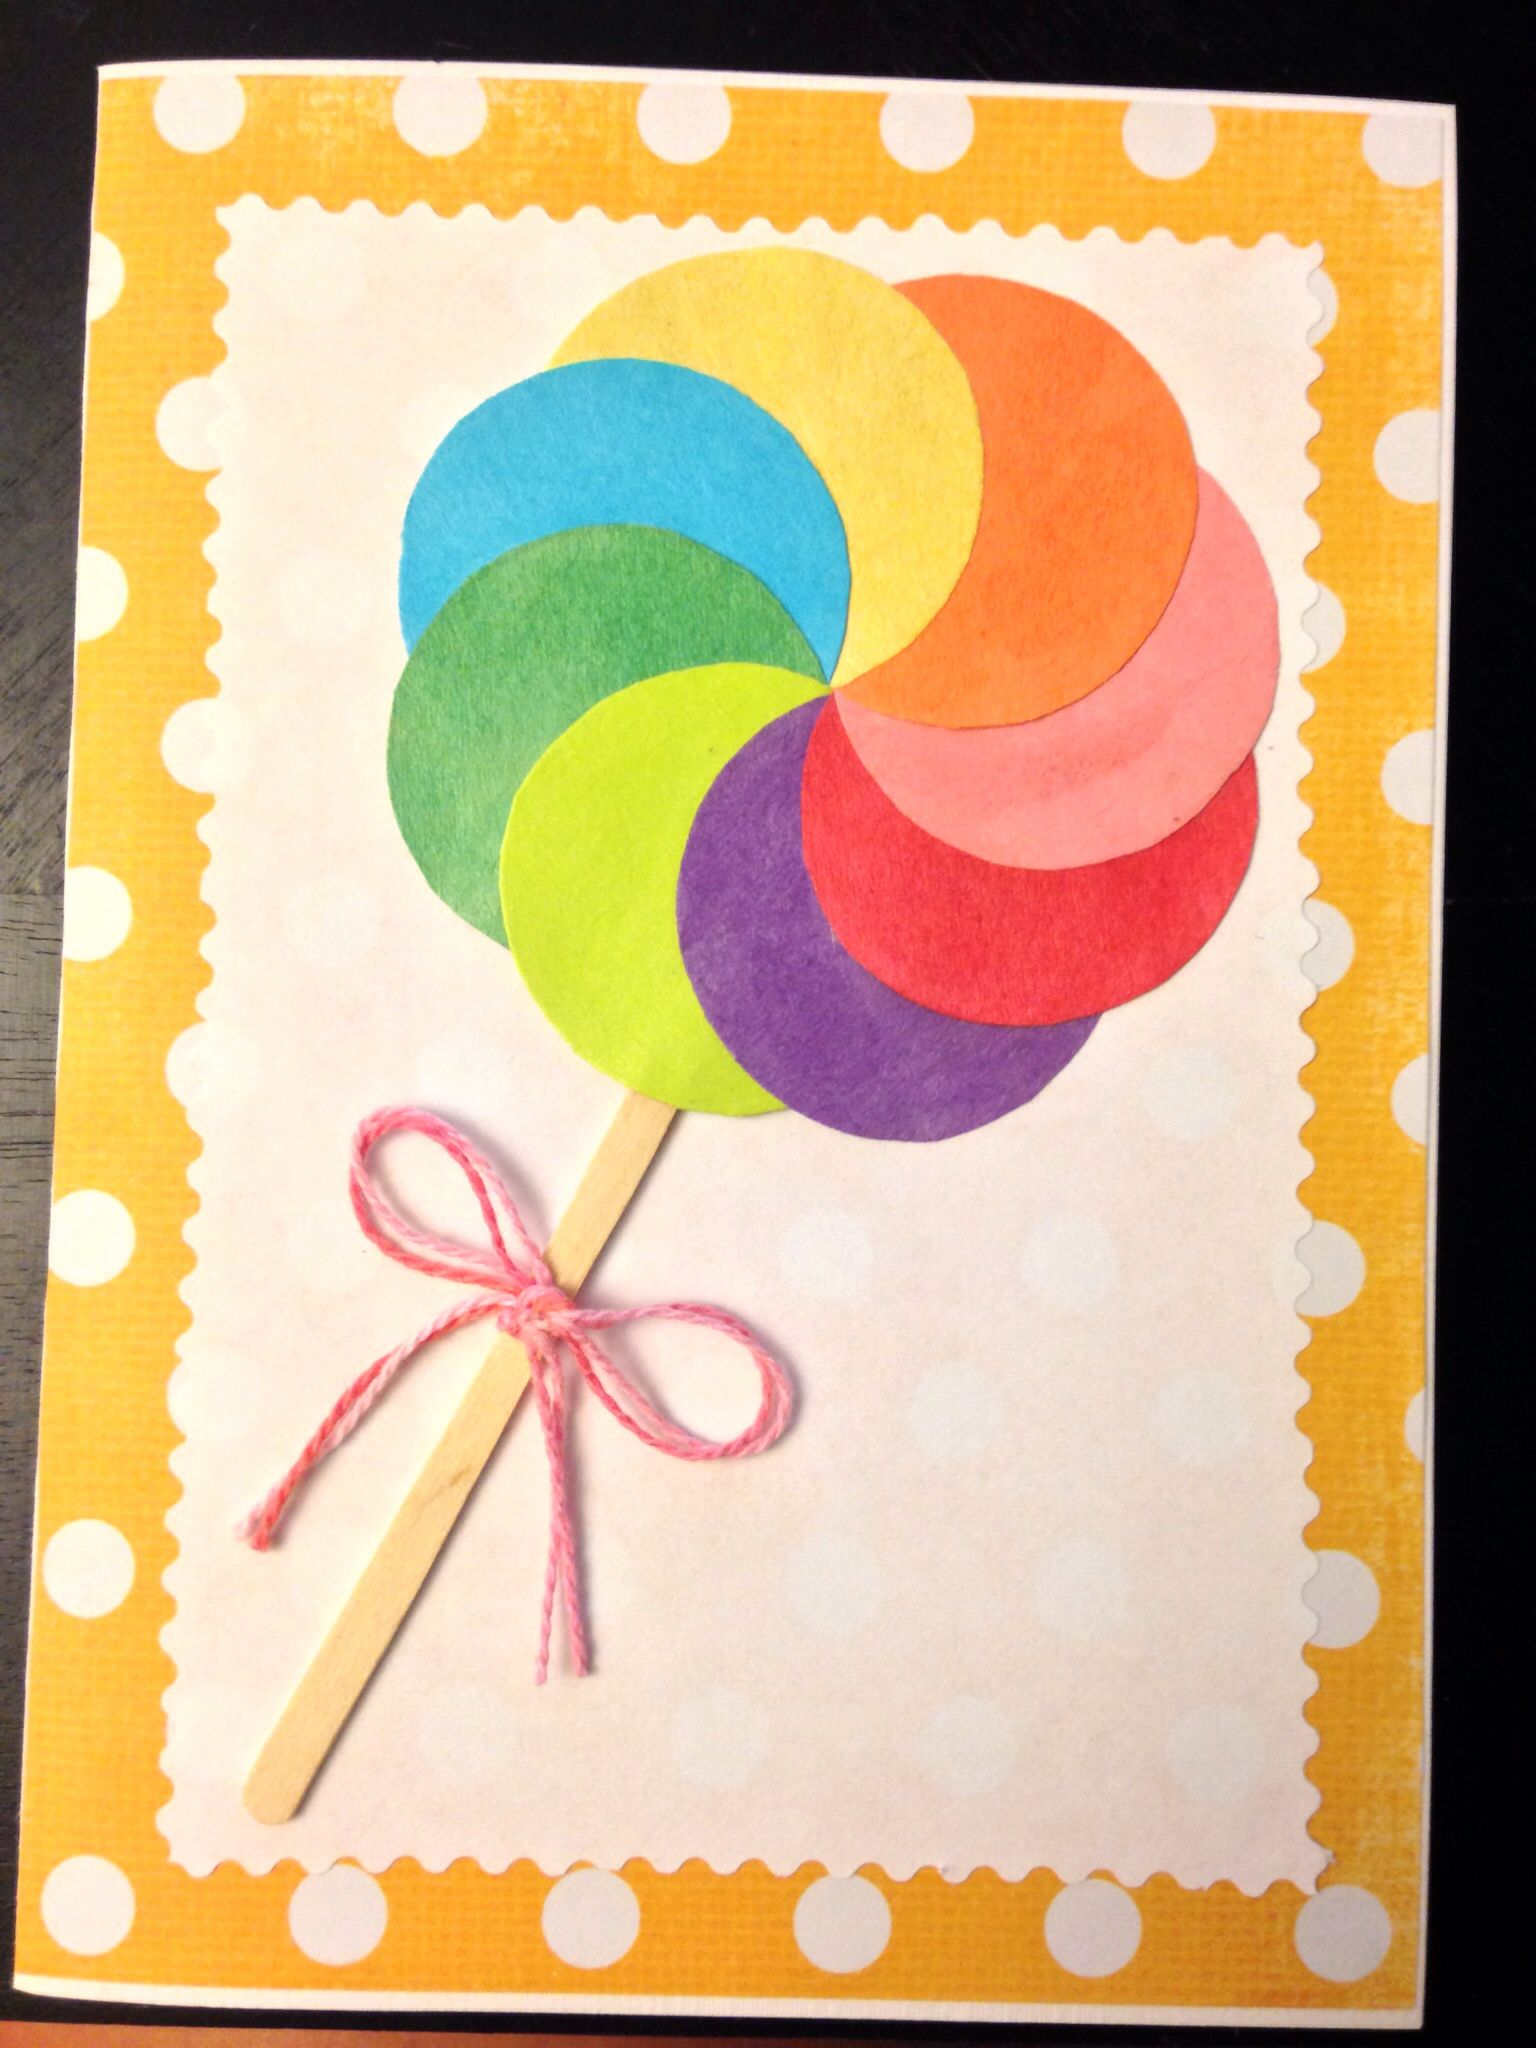 Diy Greeting Card Paper Lollipop With Mini Popsicle Stick My